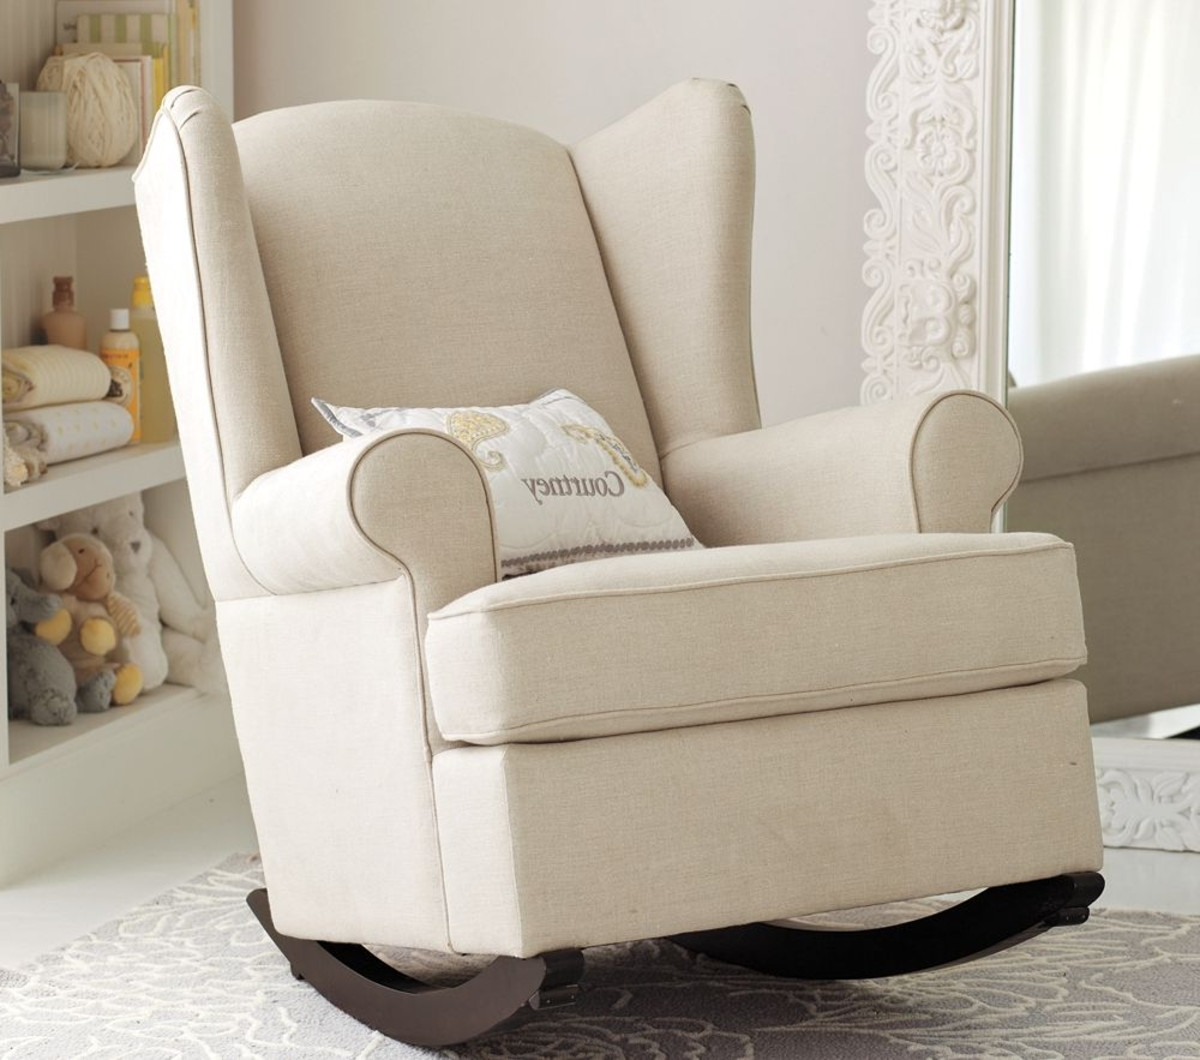 Most Popular Rocking Chairs For Baby Room In Nursery Rocking Chair Courtney – Nursery Rocking Chair For Mom And (View 4 of 15)